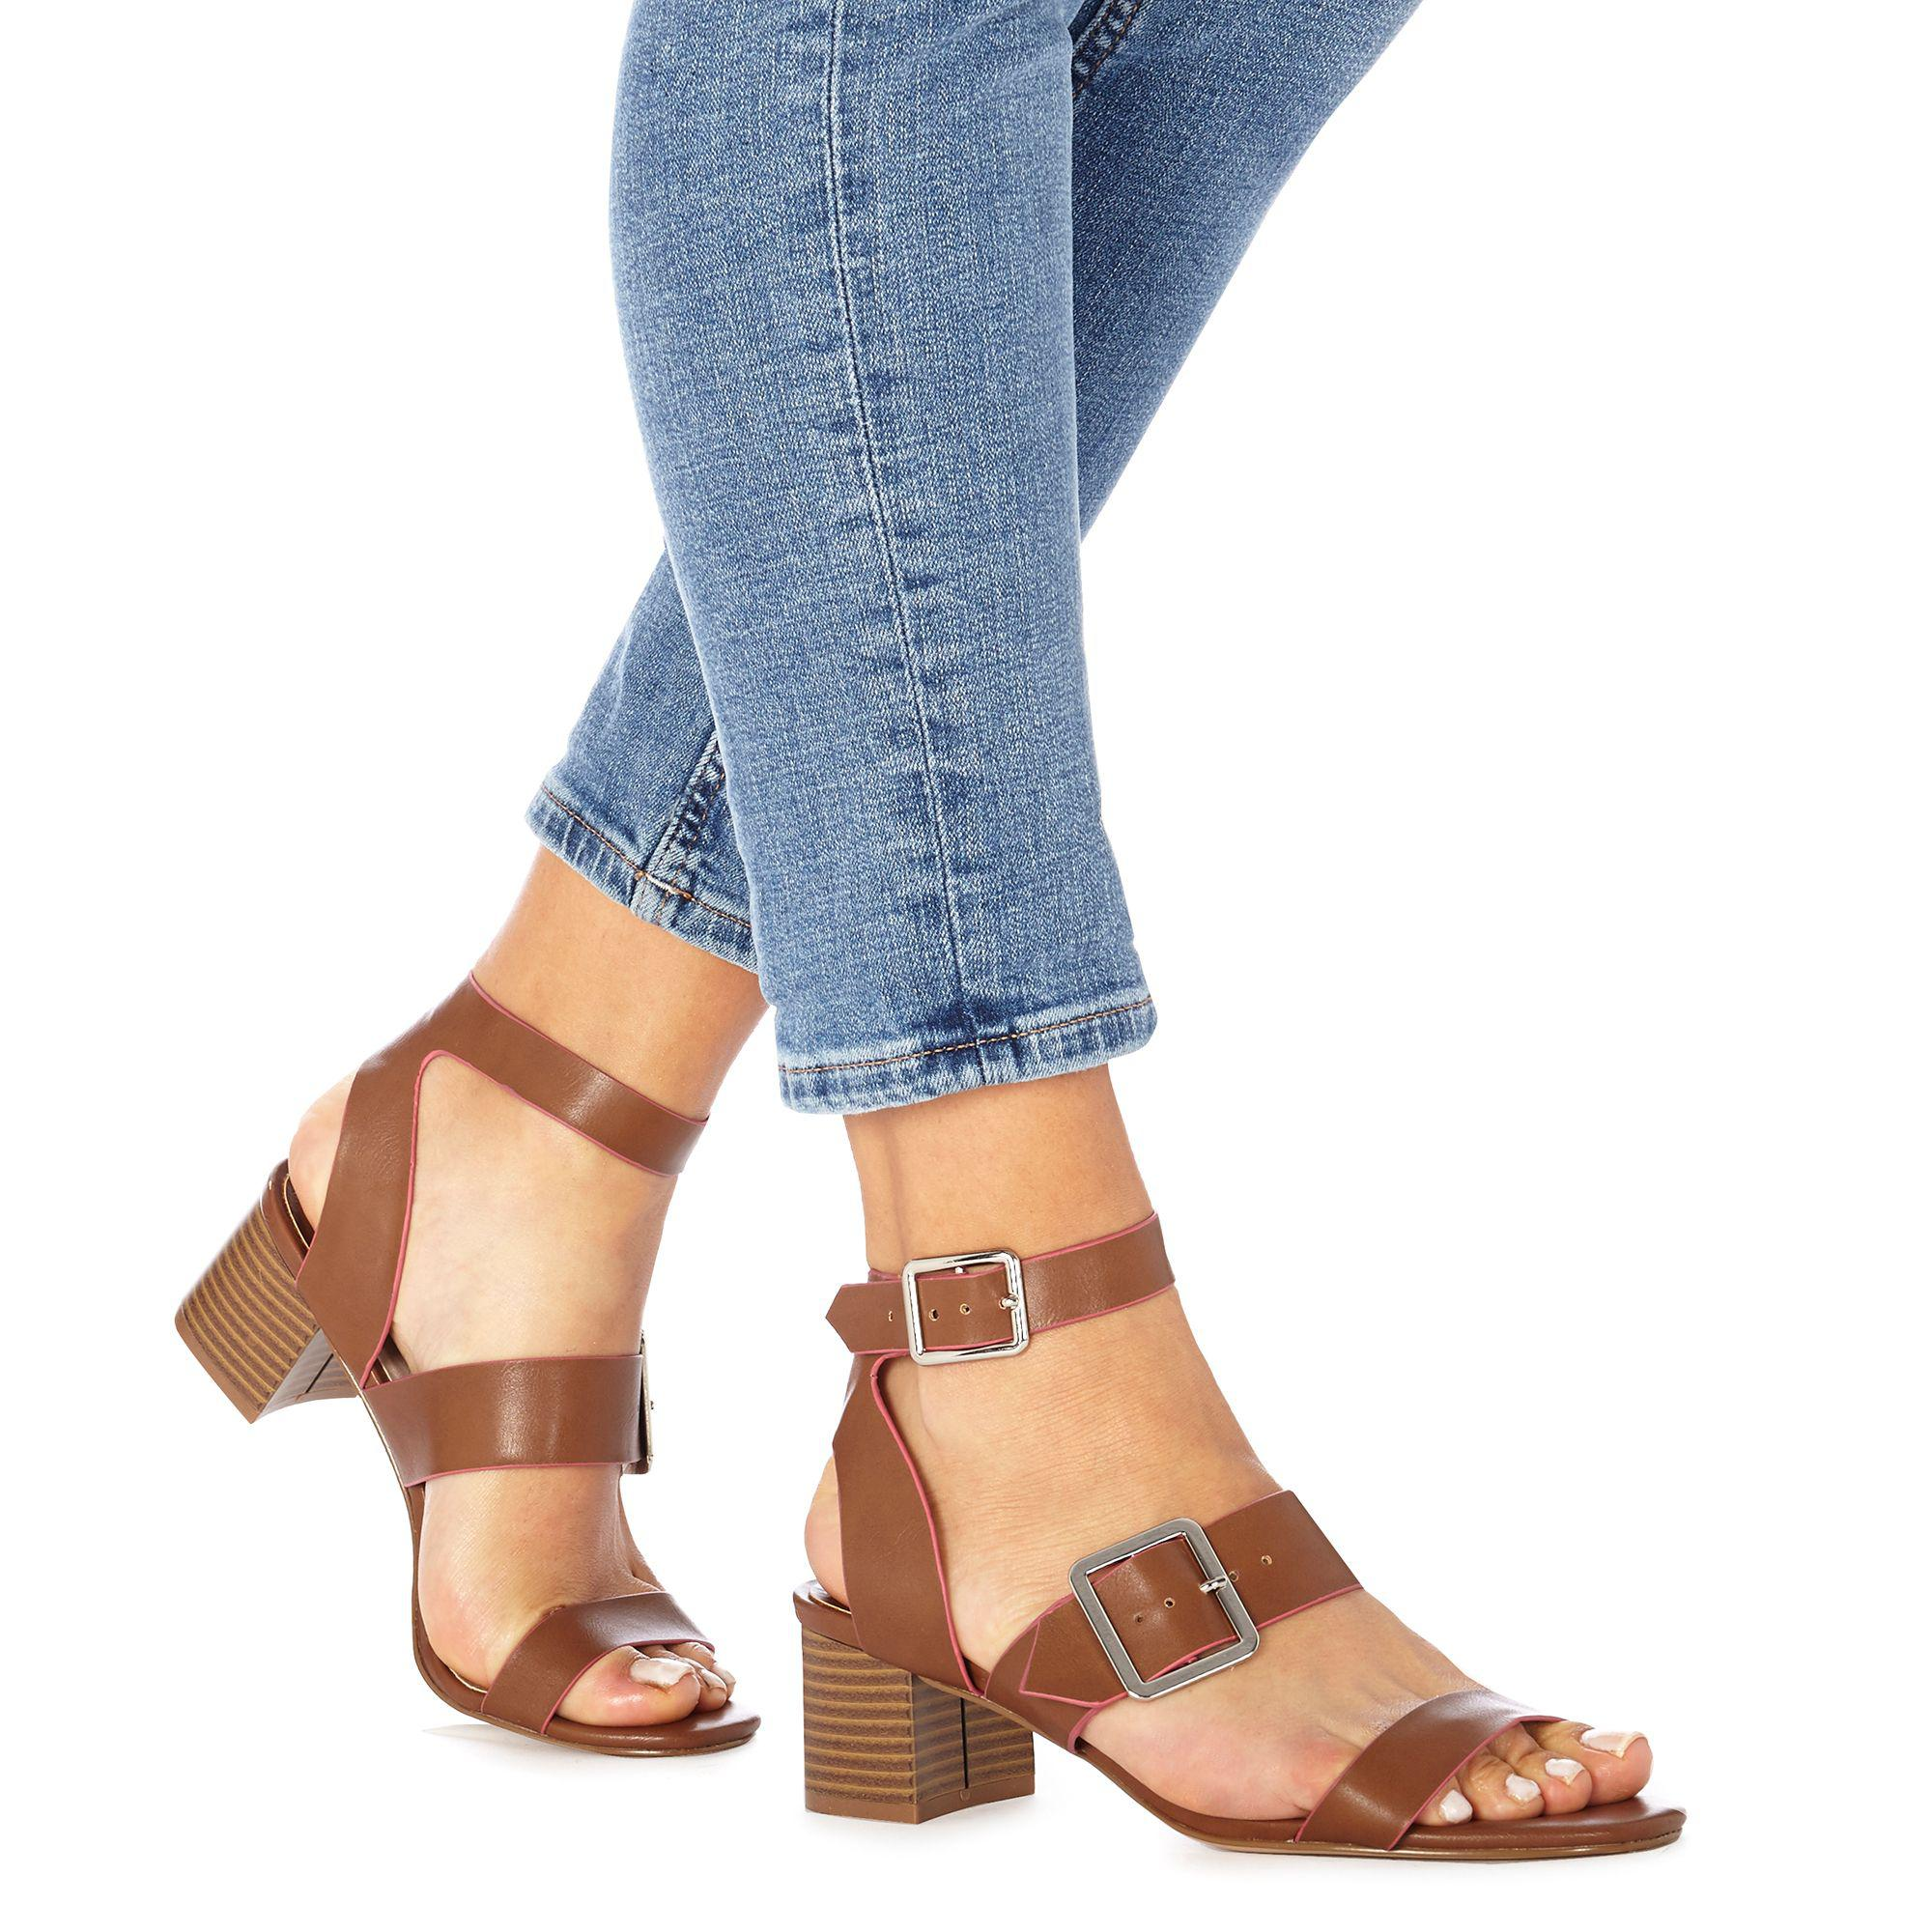 footlocker cheap online collections Tan 'Dustin' mid block heel ankle strap sandals sale visa payment shop for sale online outlet new styles Xrlfr